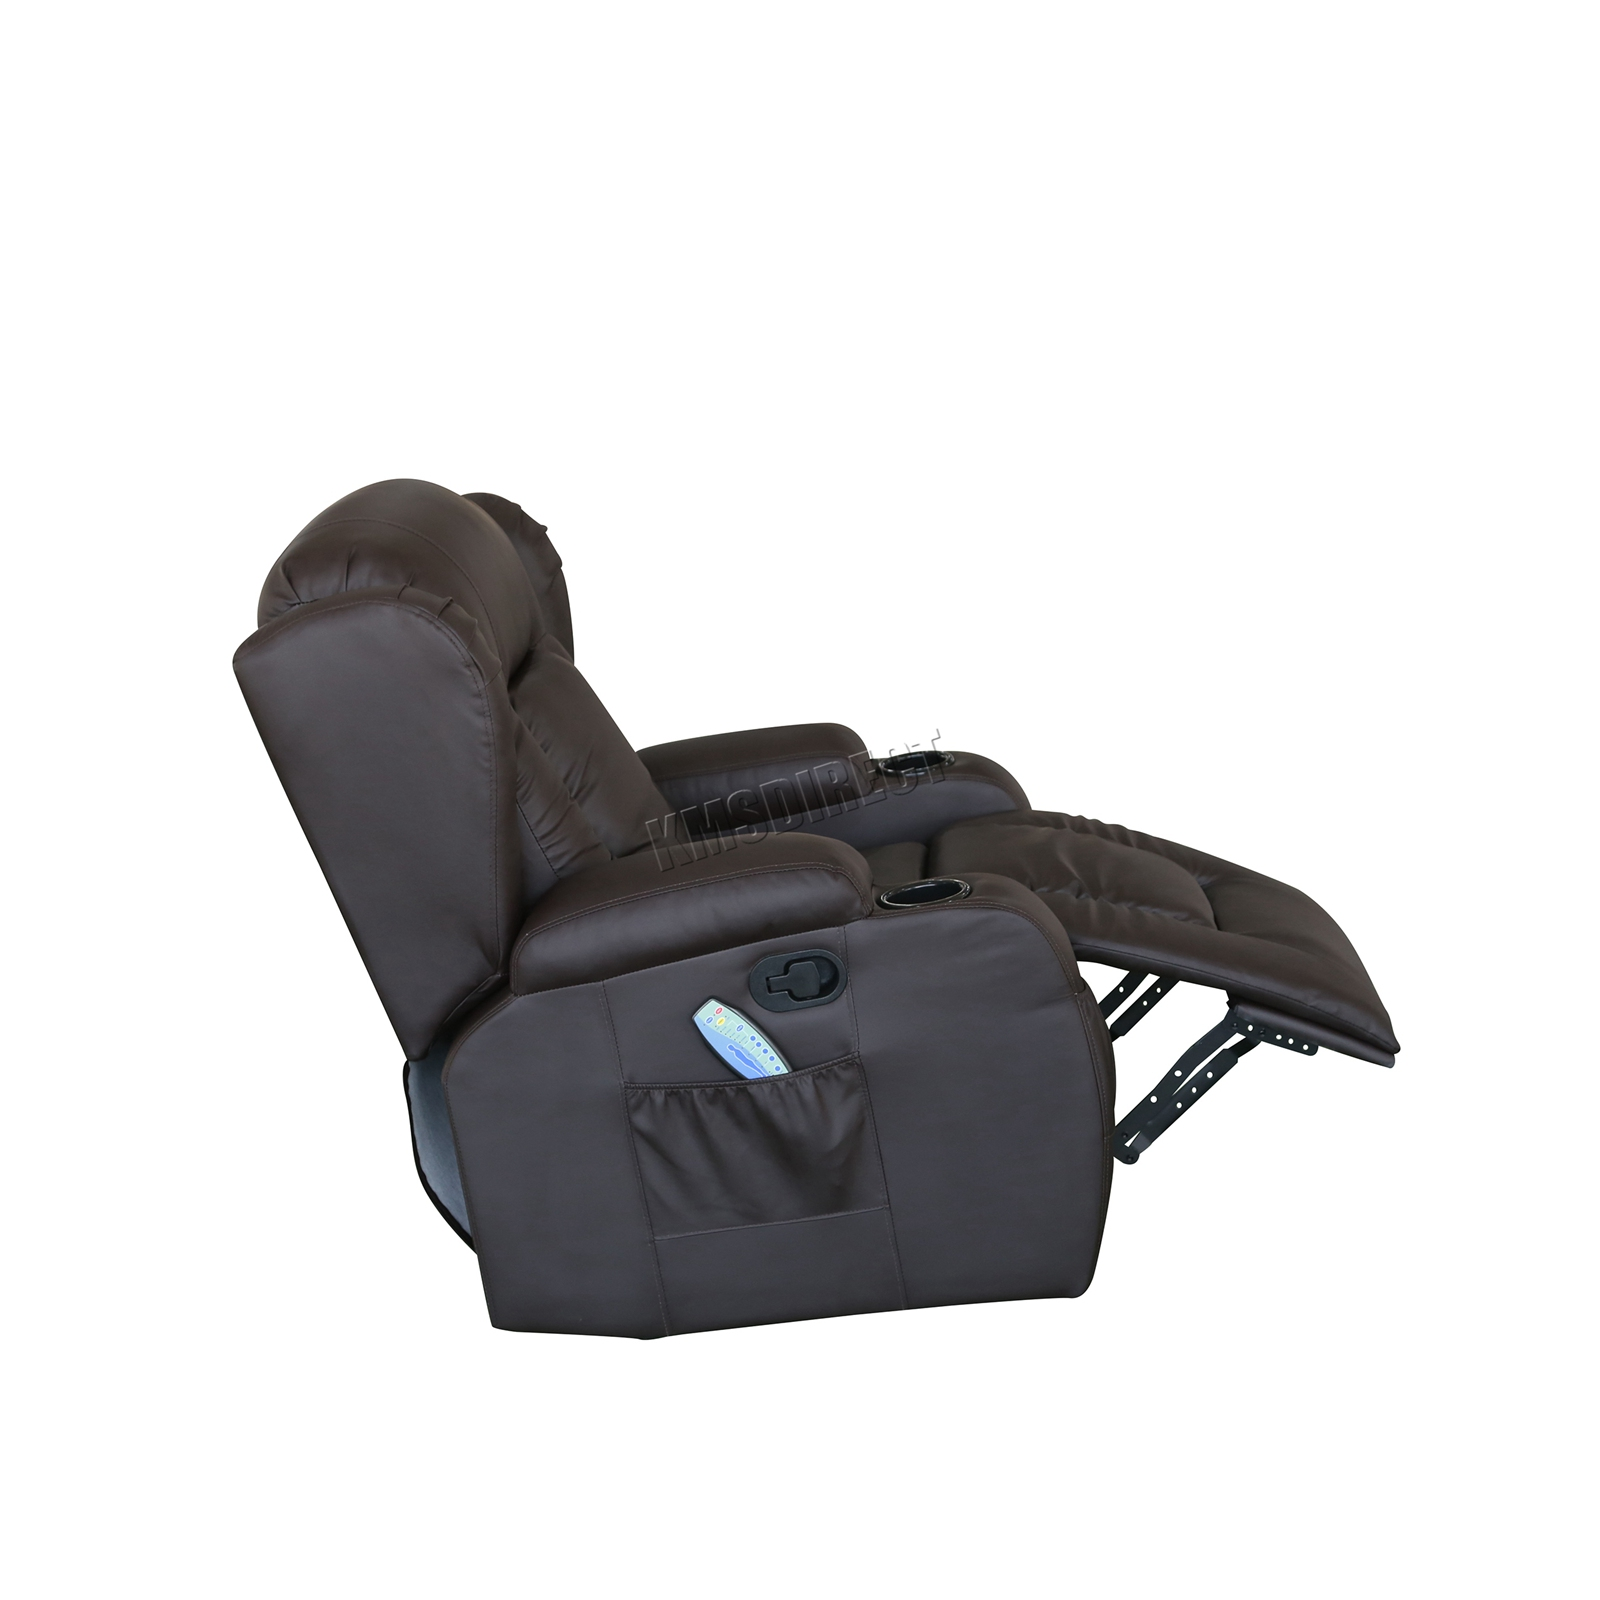 WESTWOOD-Leather-Recliner-Armchair-Swivel-Heated-chair-Massage-Gaming-Chair thumbnail 30